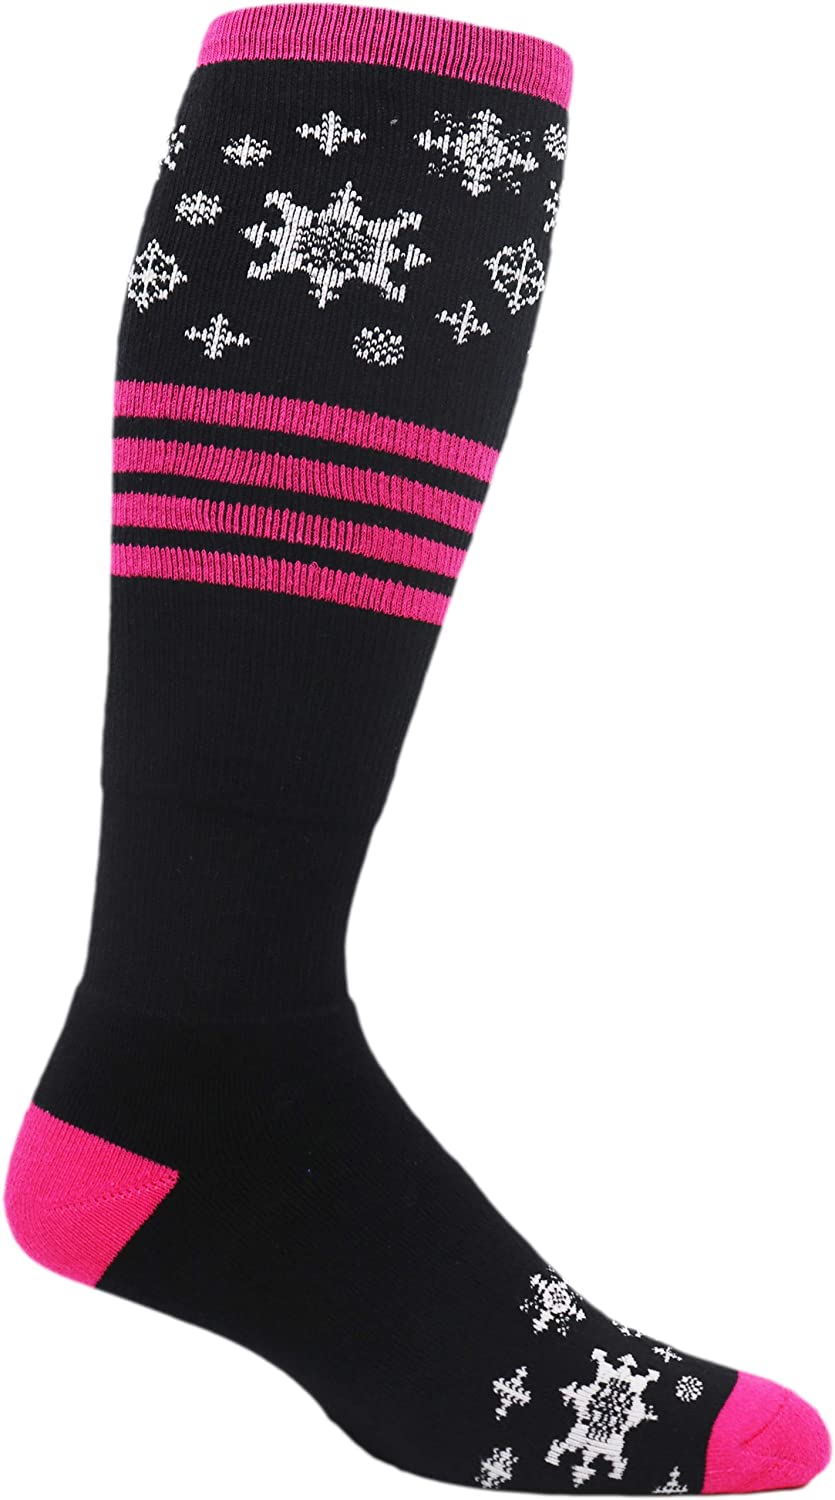 MOXY Socks 1 year warranty Black with Pink At the price Extreme Ski Full-Cushion The Blizzard